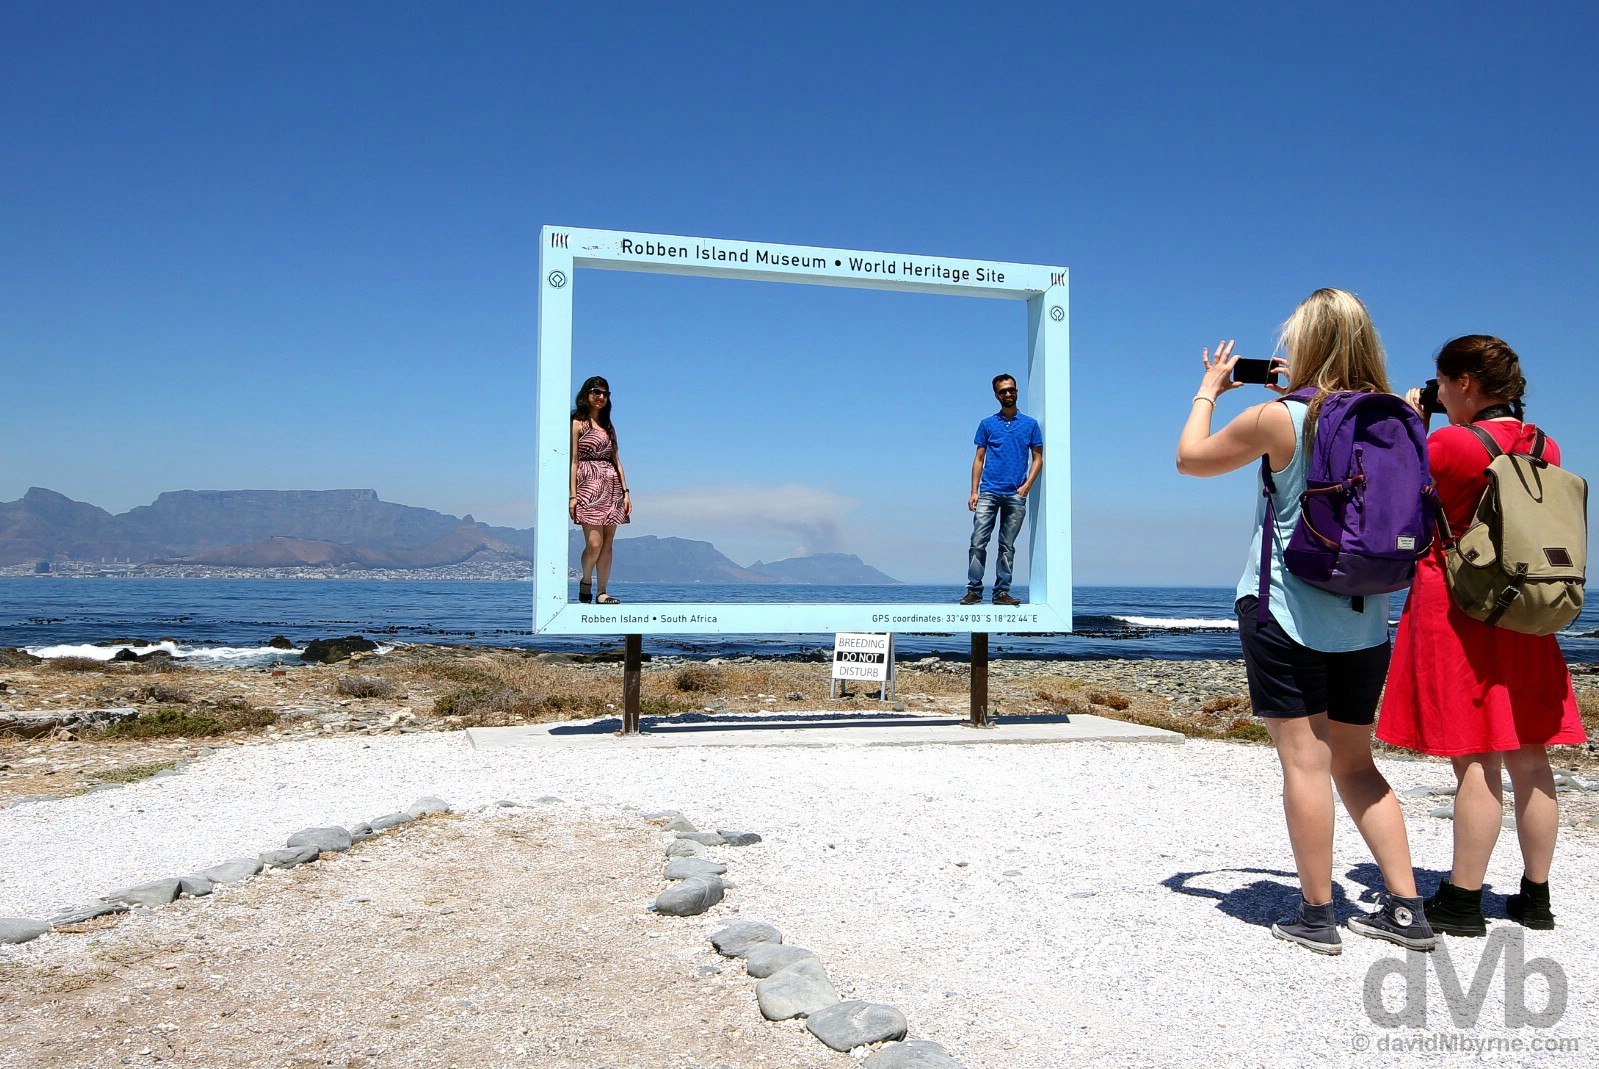 Framed. Robben Island, Table Bay, Western Cape, South Africa. February 22, 2017.